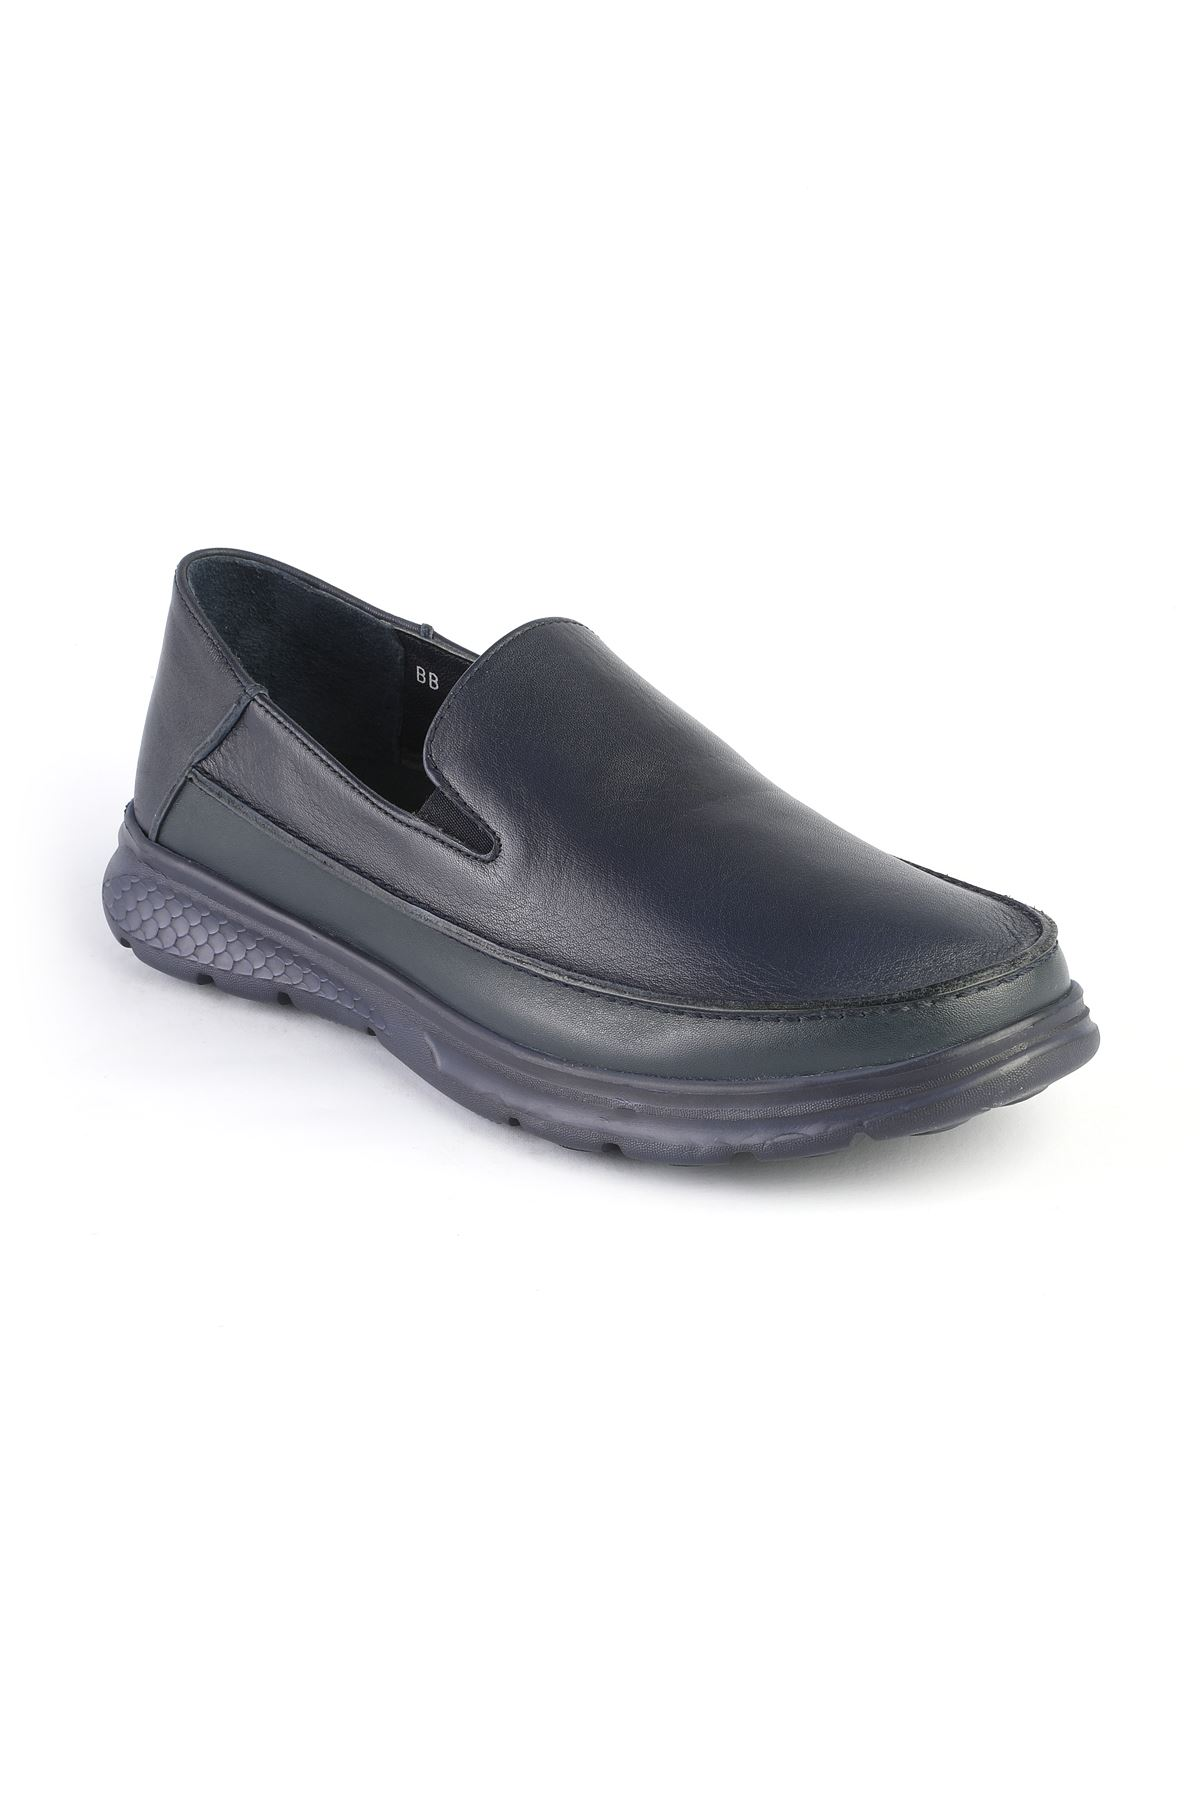 Libero 3223 Navy Blue Loafer Shoes